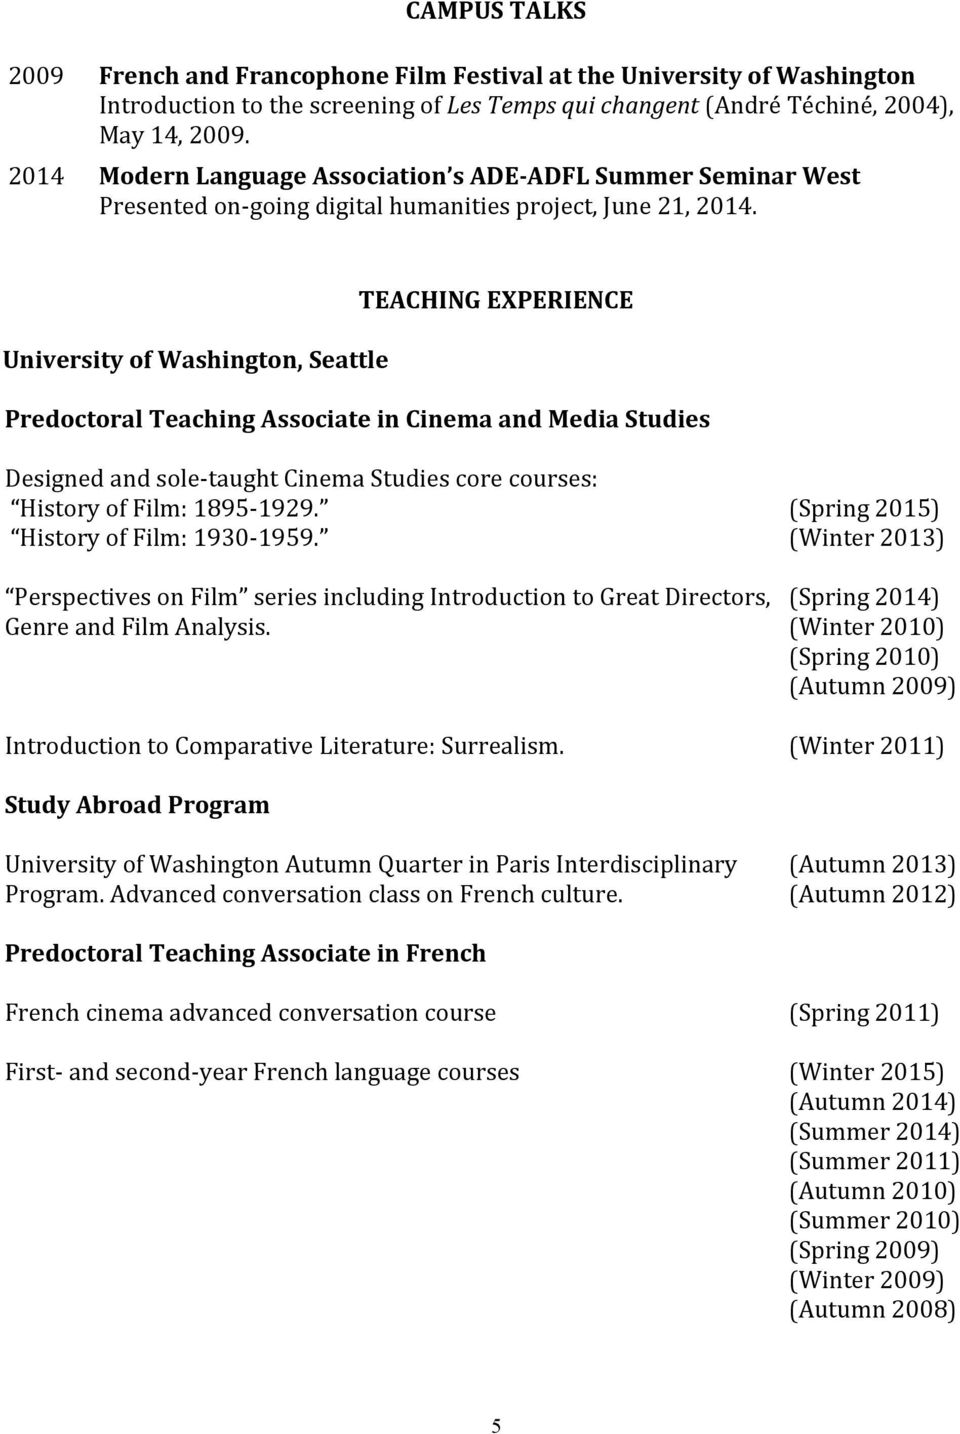 University of Washington, Seattle TEACHING EXPERIENCE Predoctoral Teaching Associate in Cinema and Media Studies Designed and sole- taught Cinema Studies core courses: History of Film: 1895-1929.